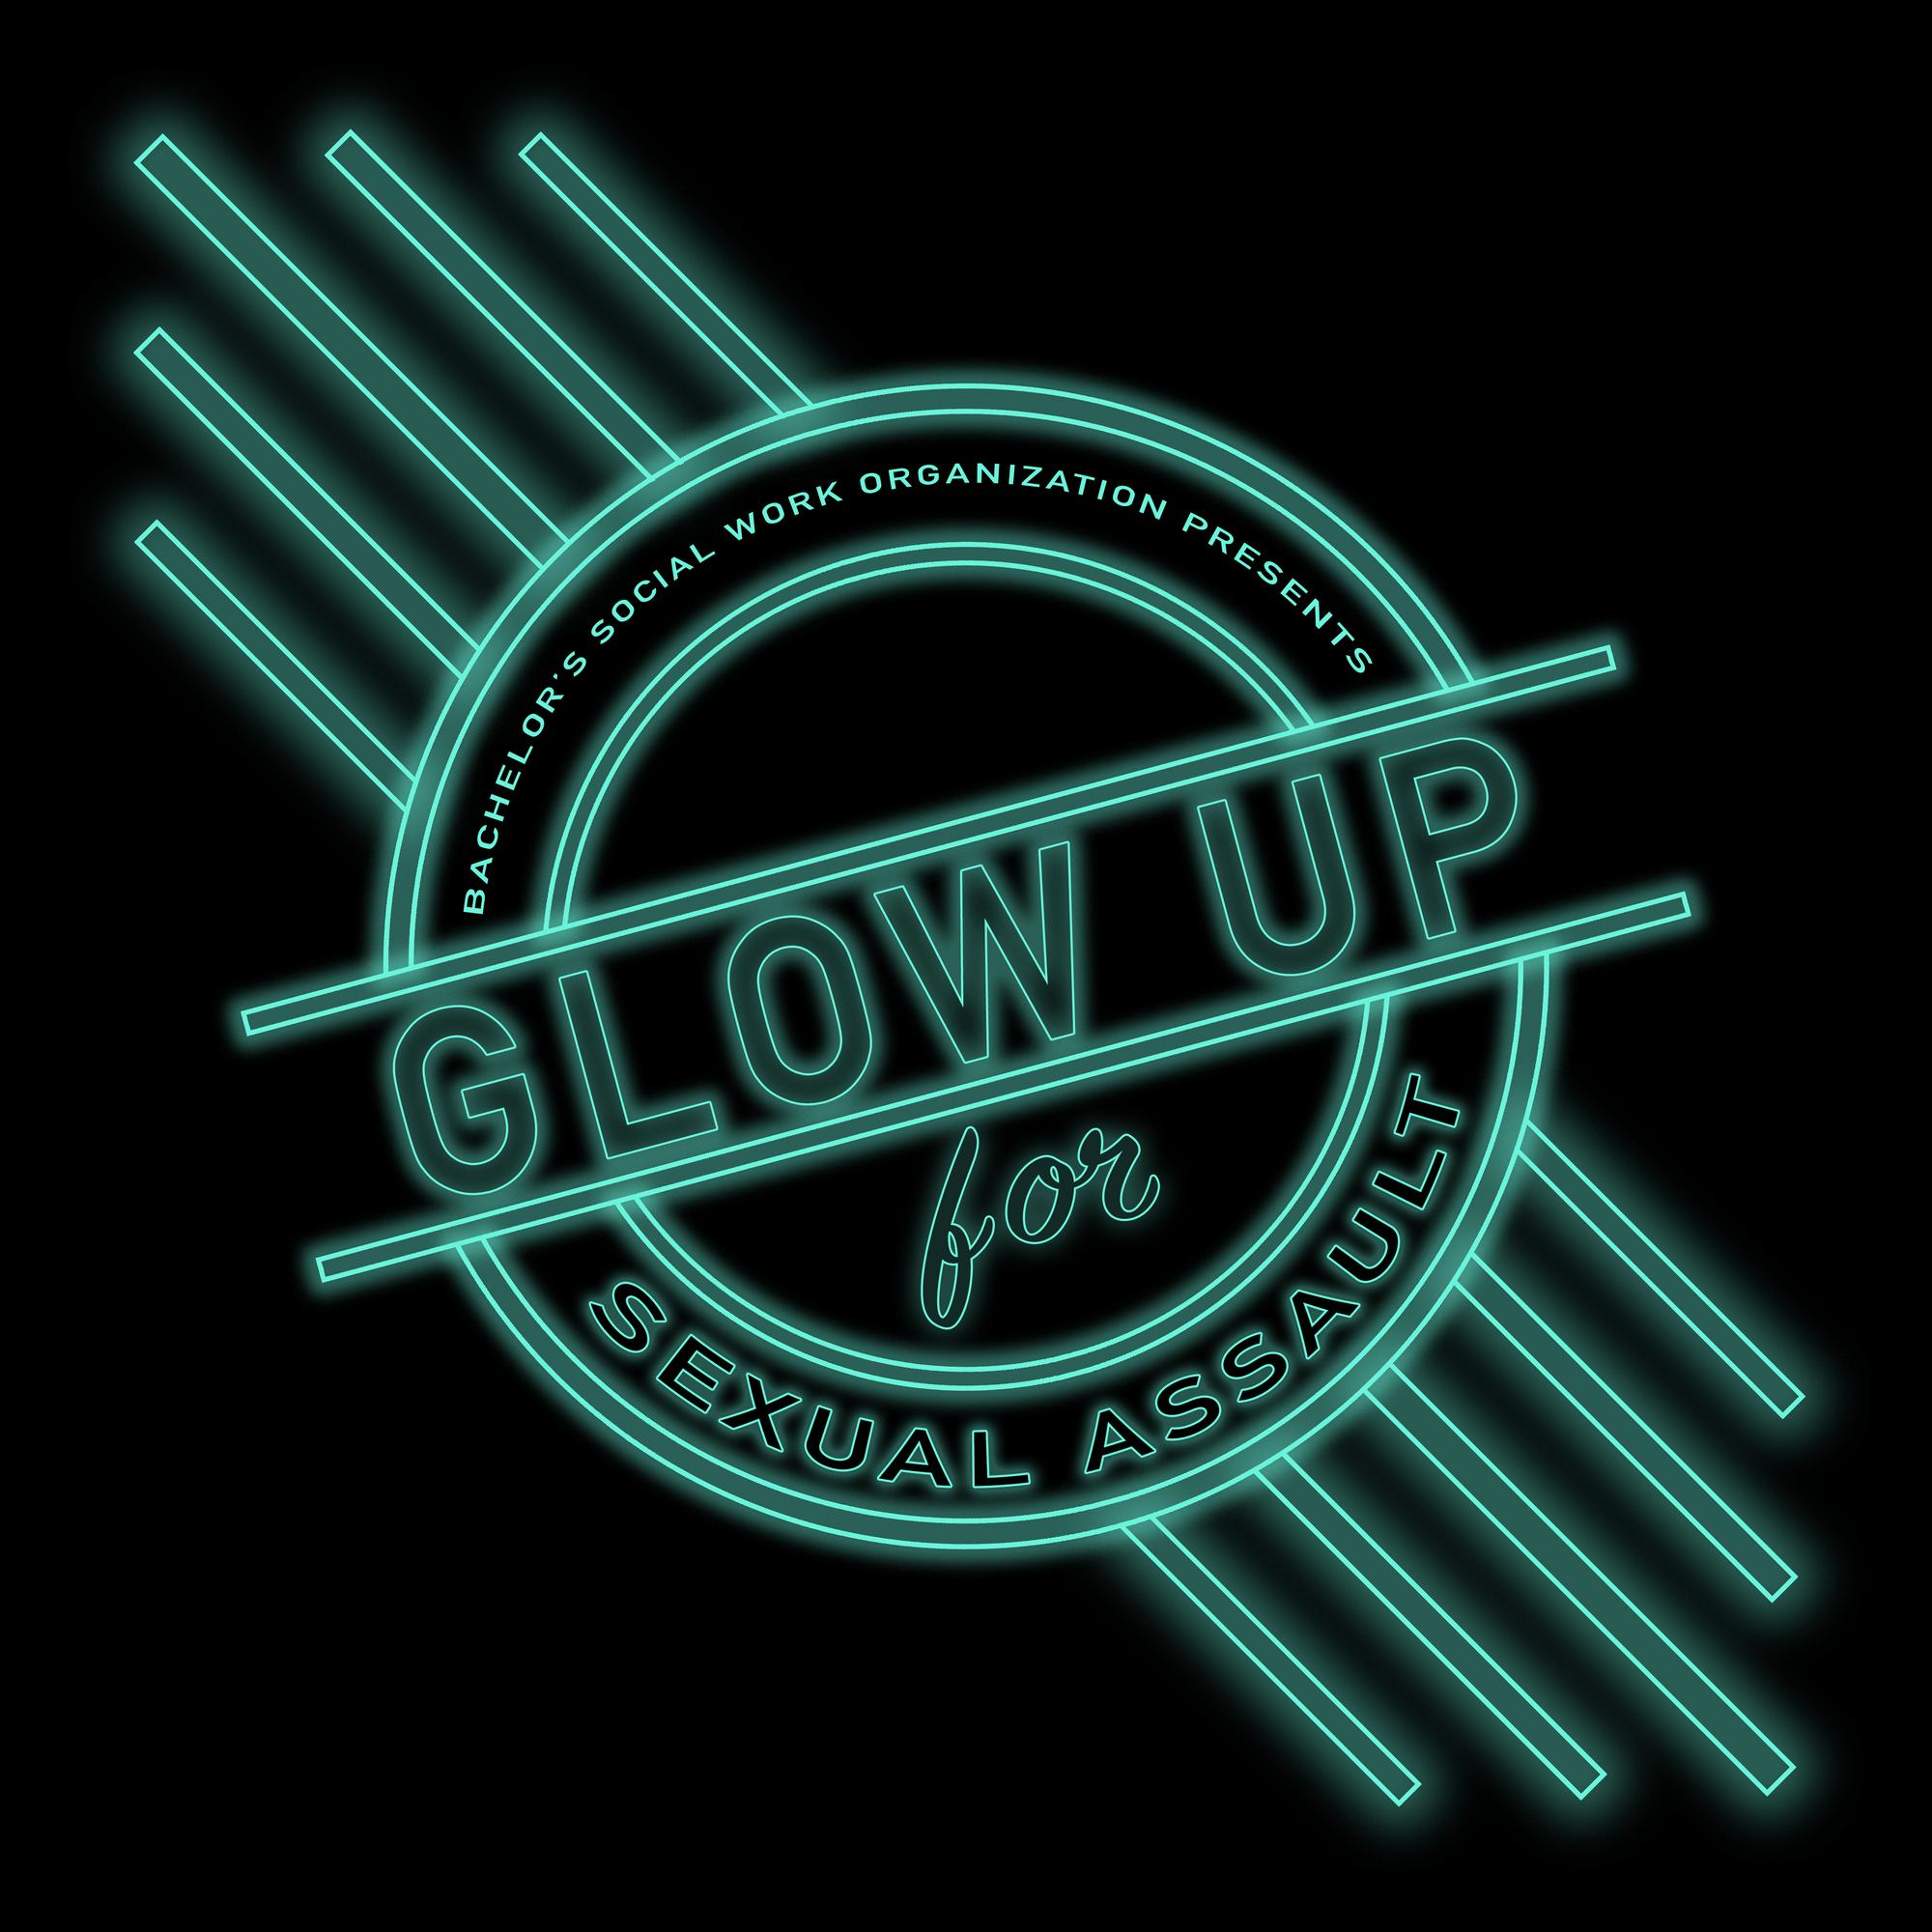 Glow Up for Sexual Assault Awareness DONATIONS